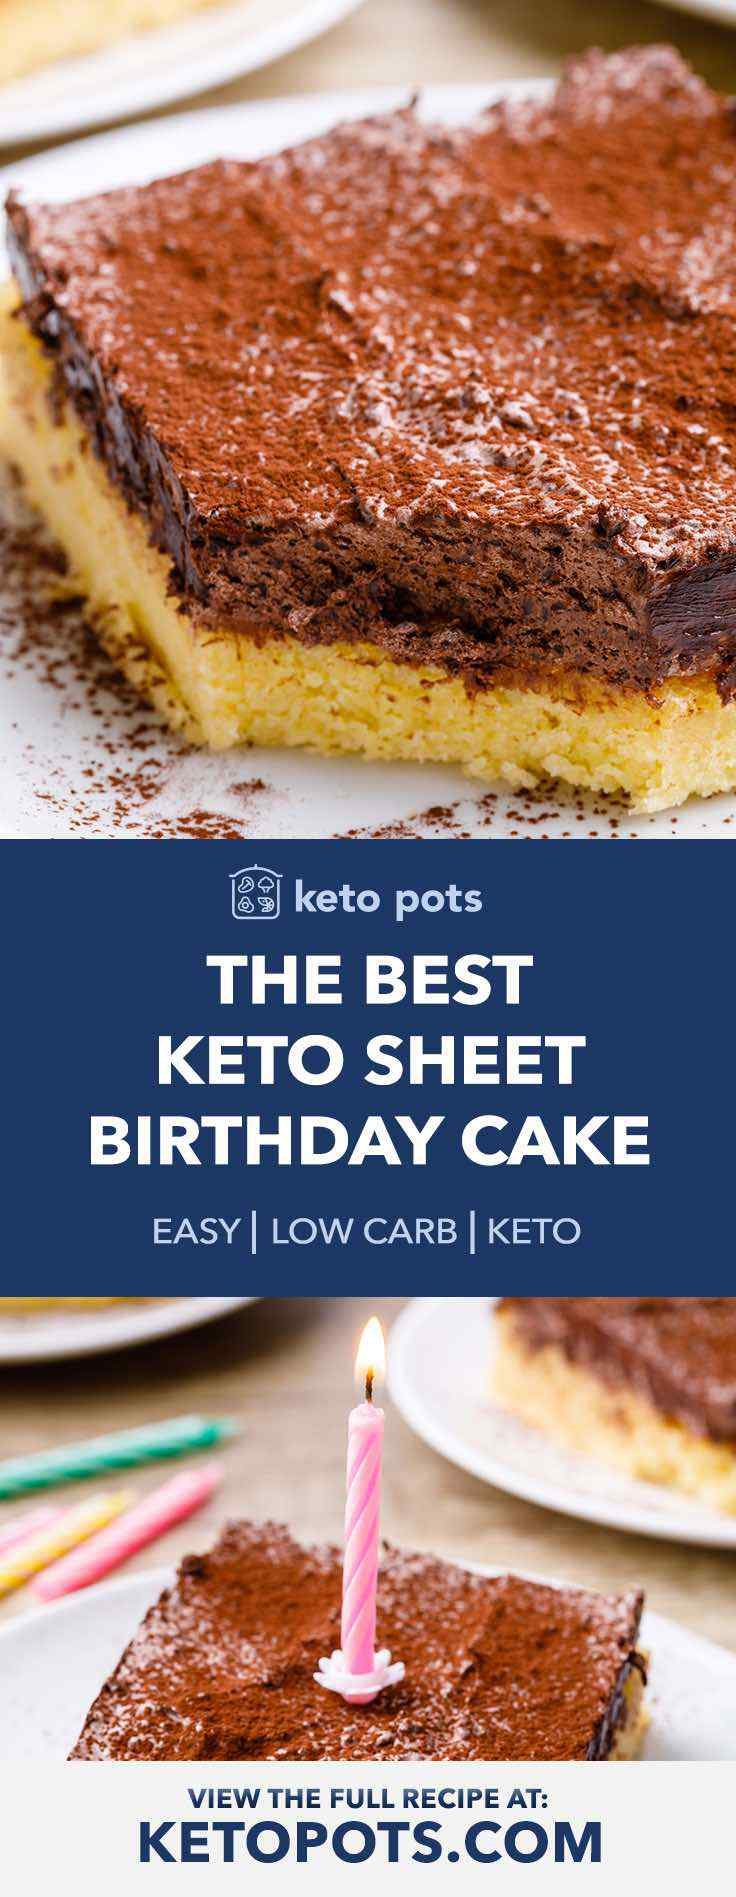 Try this incredible keto sheet birthday cake.